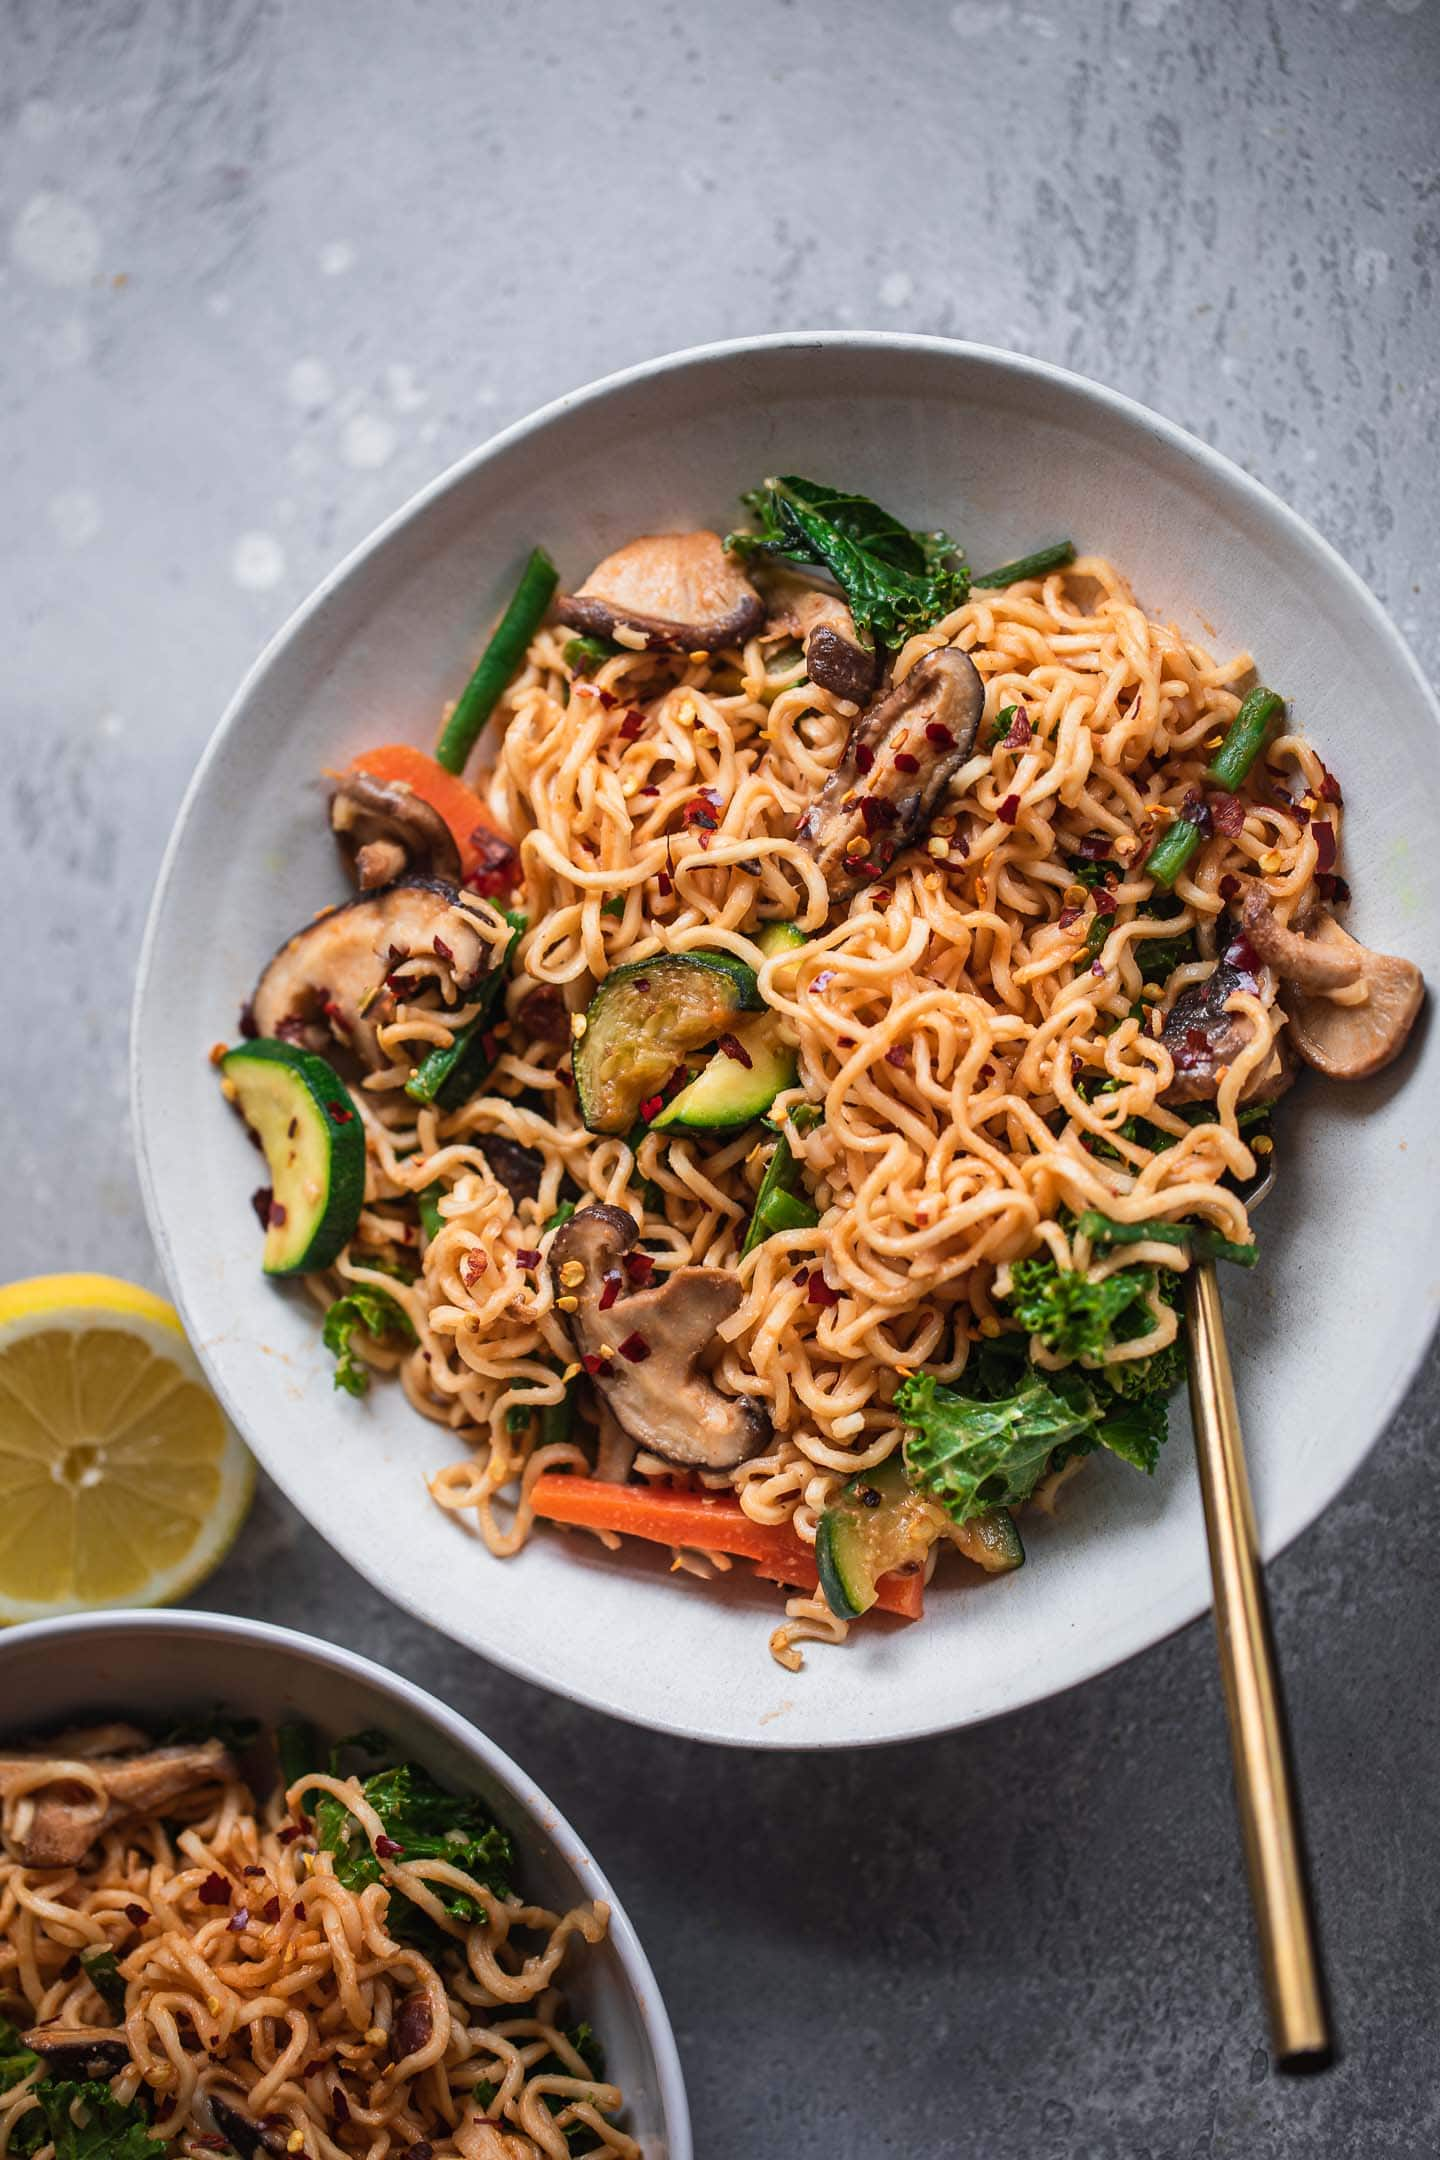 Two bowls of vegan noodles with vegetables